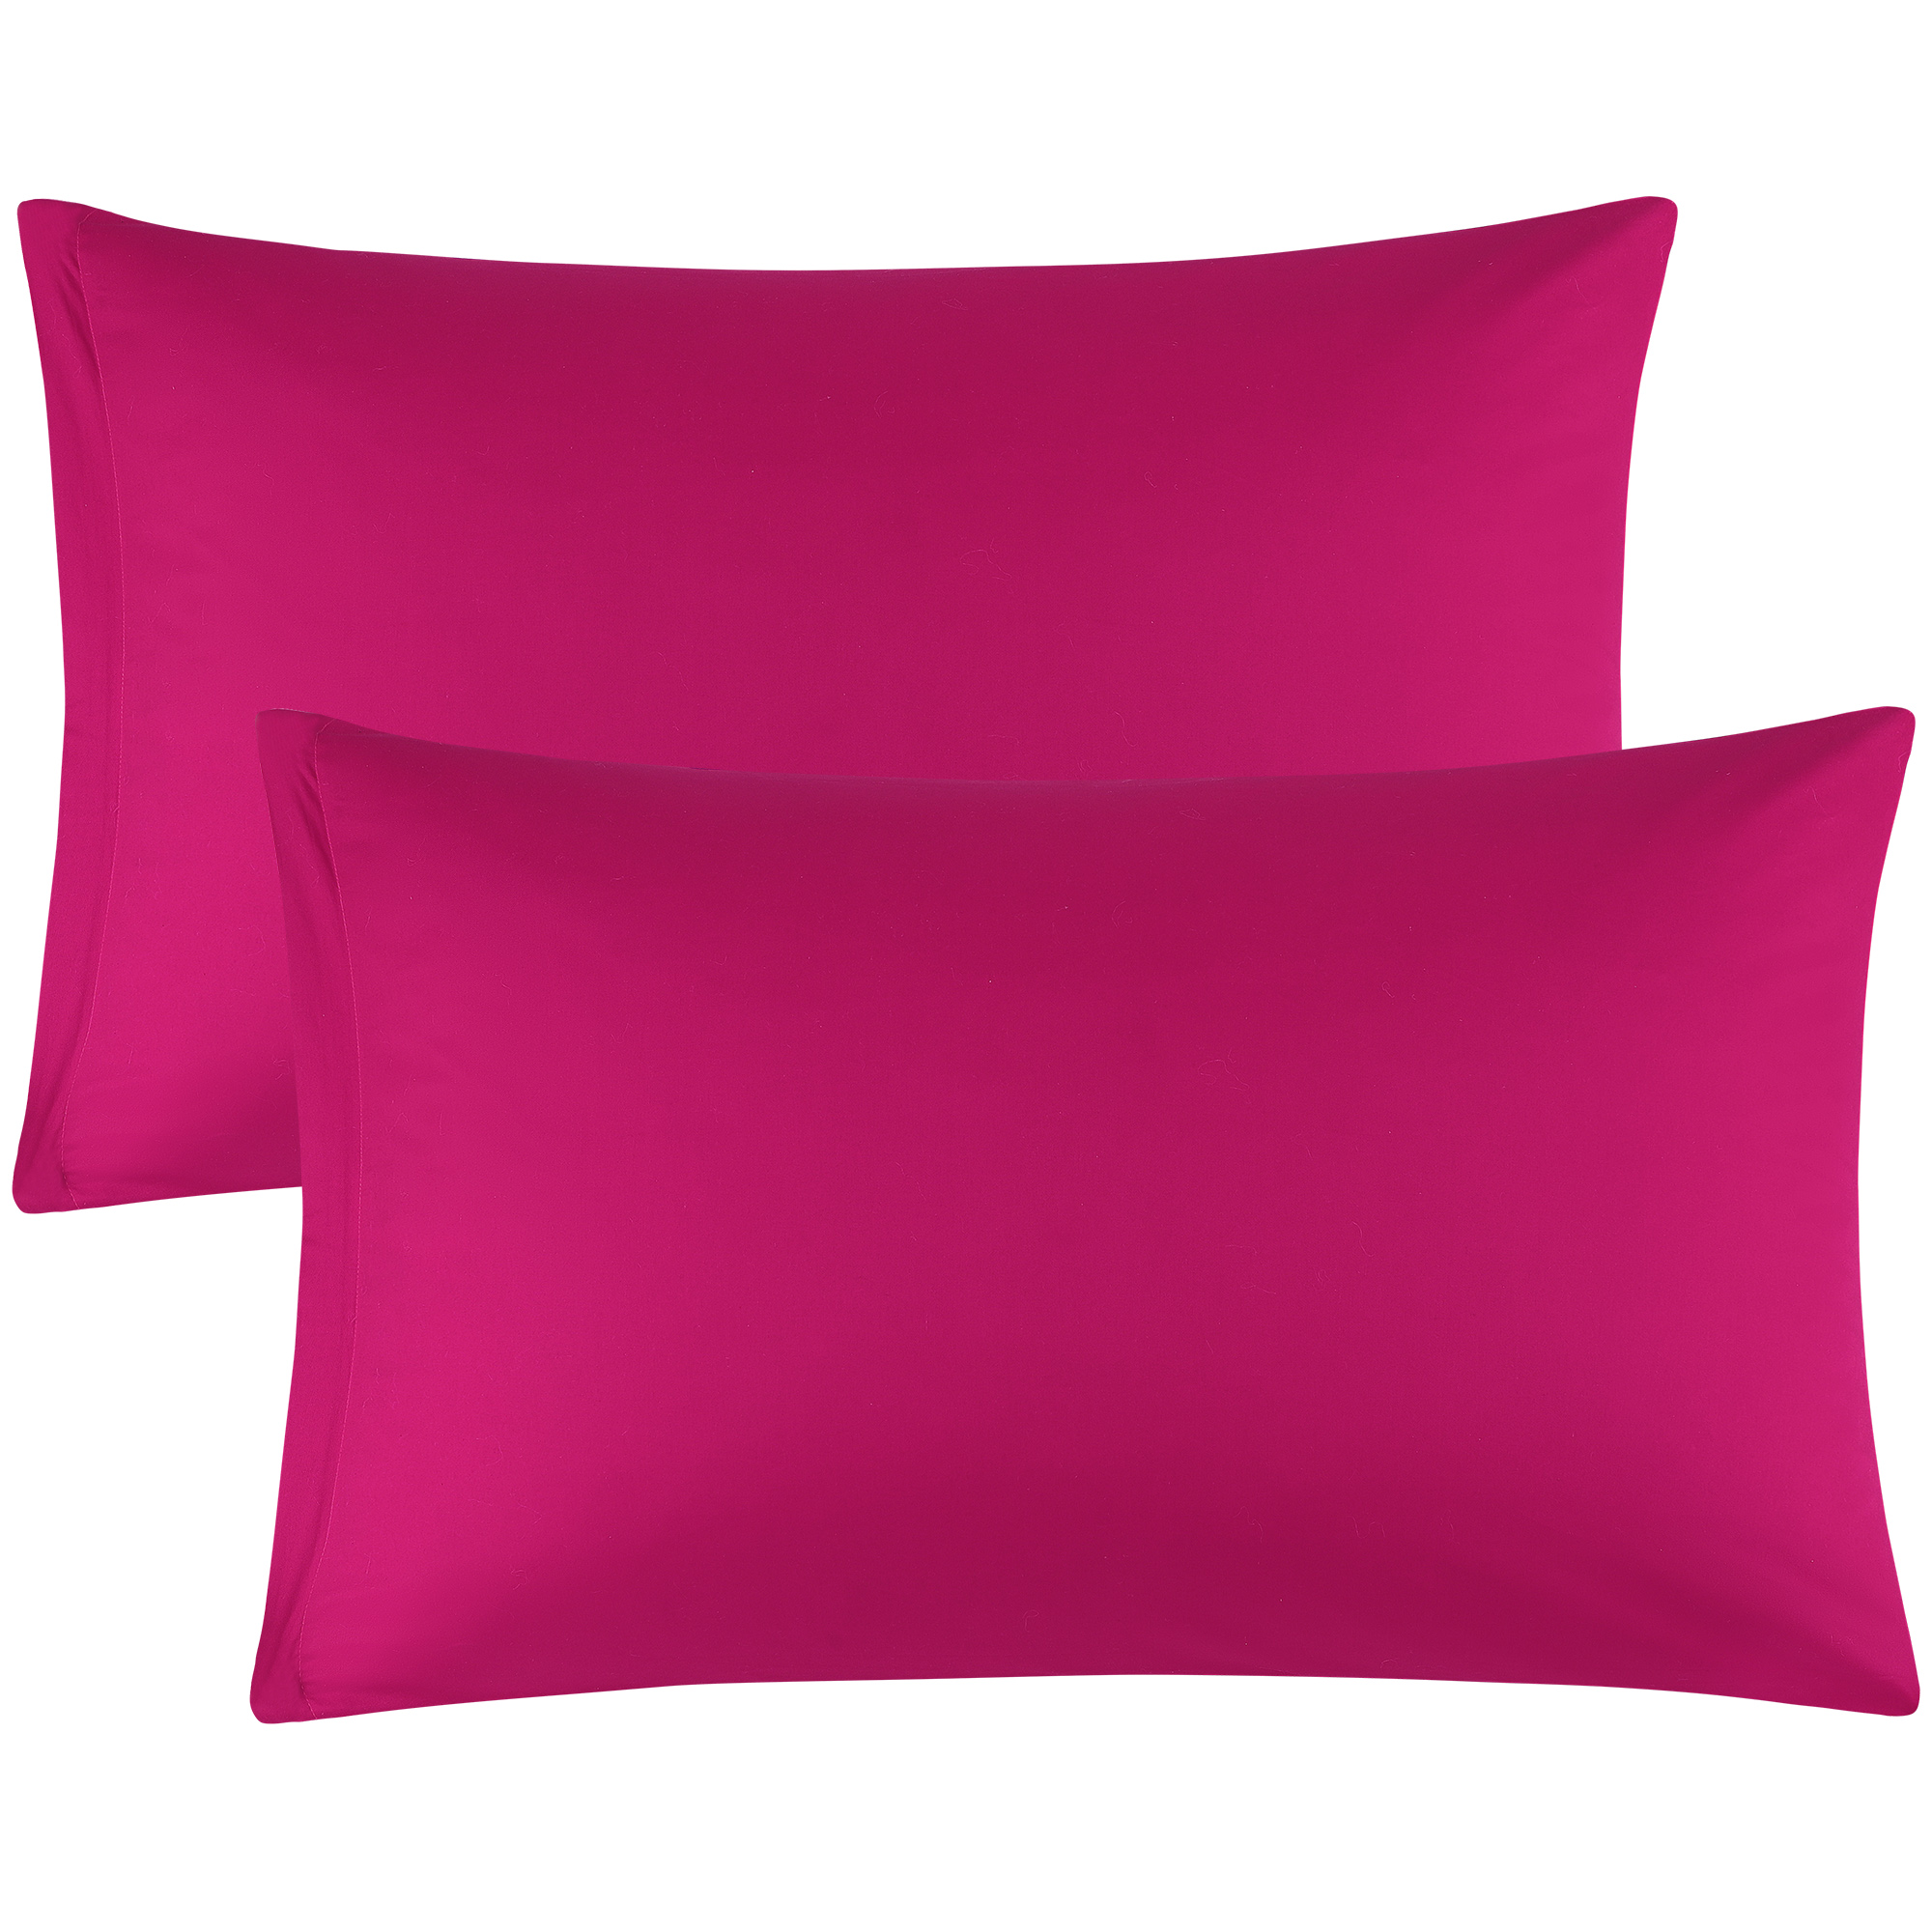 Zippered Cases Pillowcases Covers Egyptian Cotton 2-Pack (20 x 26 Inch, Fuchsia)